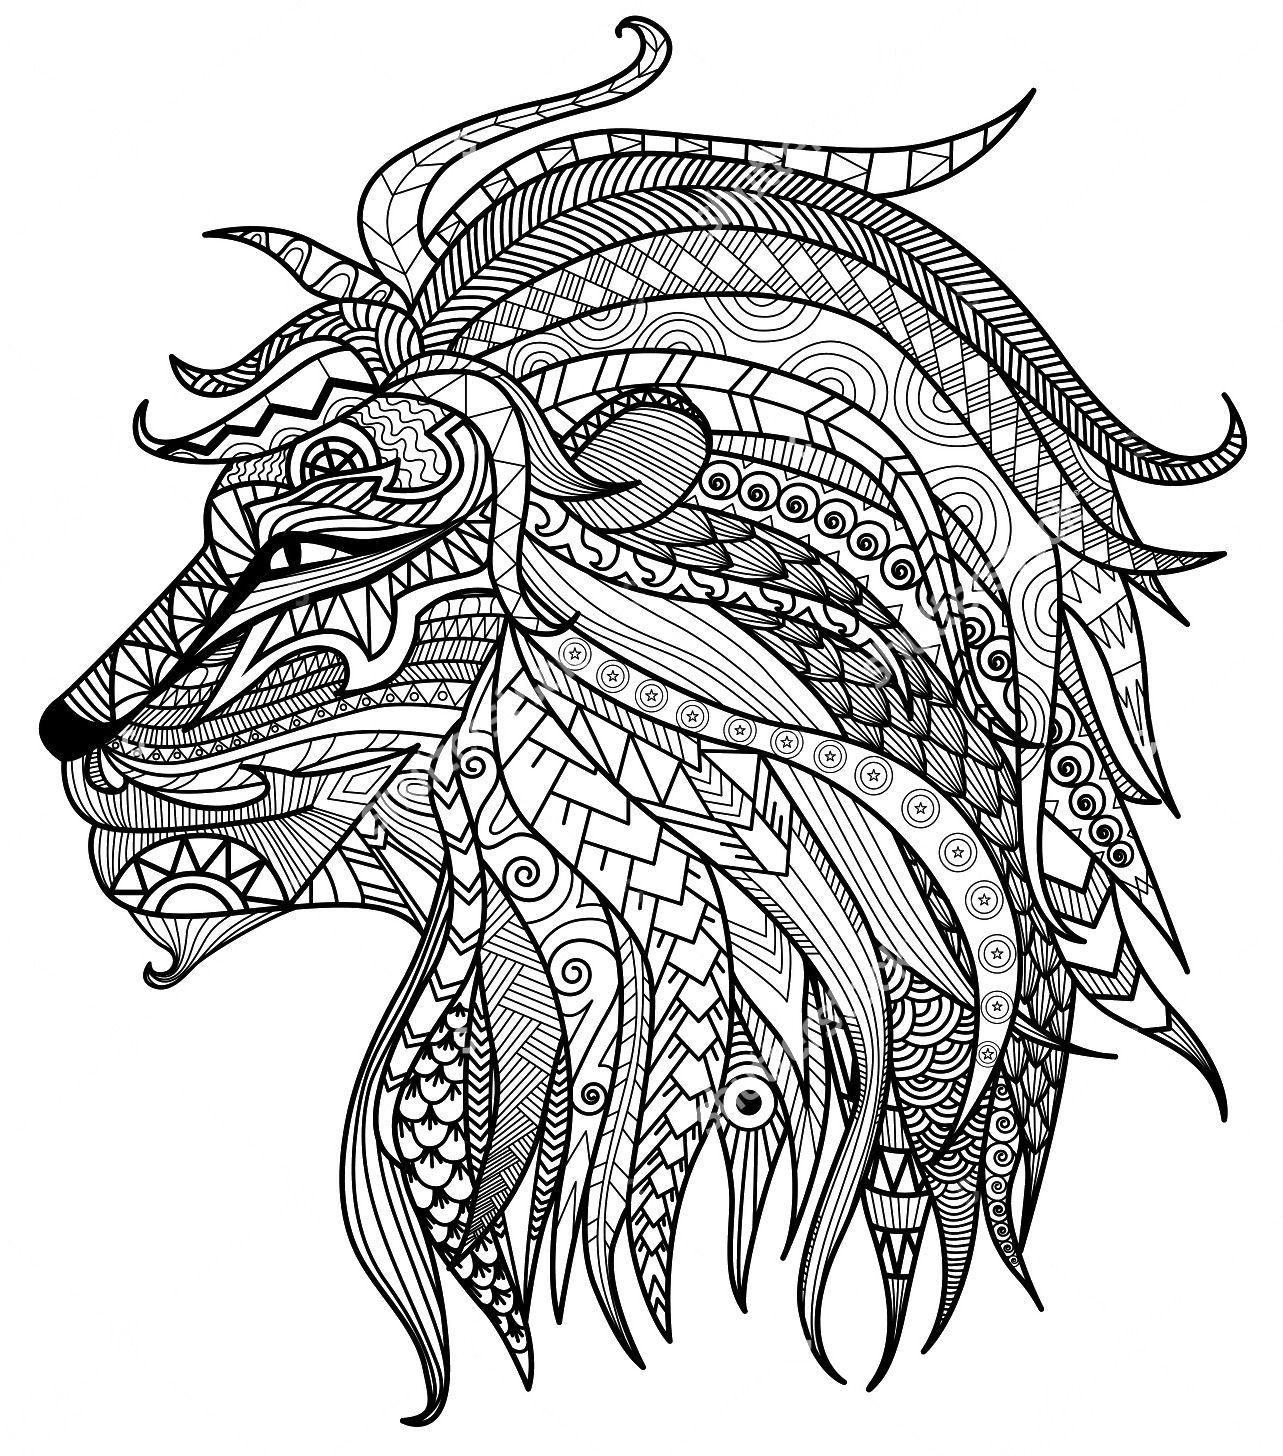 colouring pictures of lions fun learn free worksheets for kid ภาพระบายส the lion lions pictures colouring of